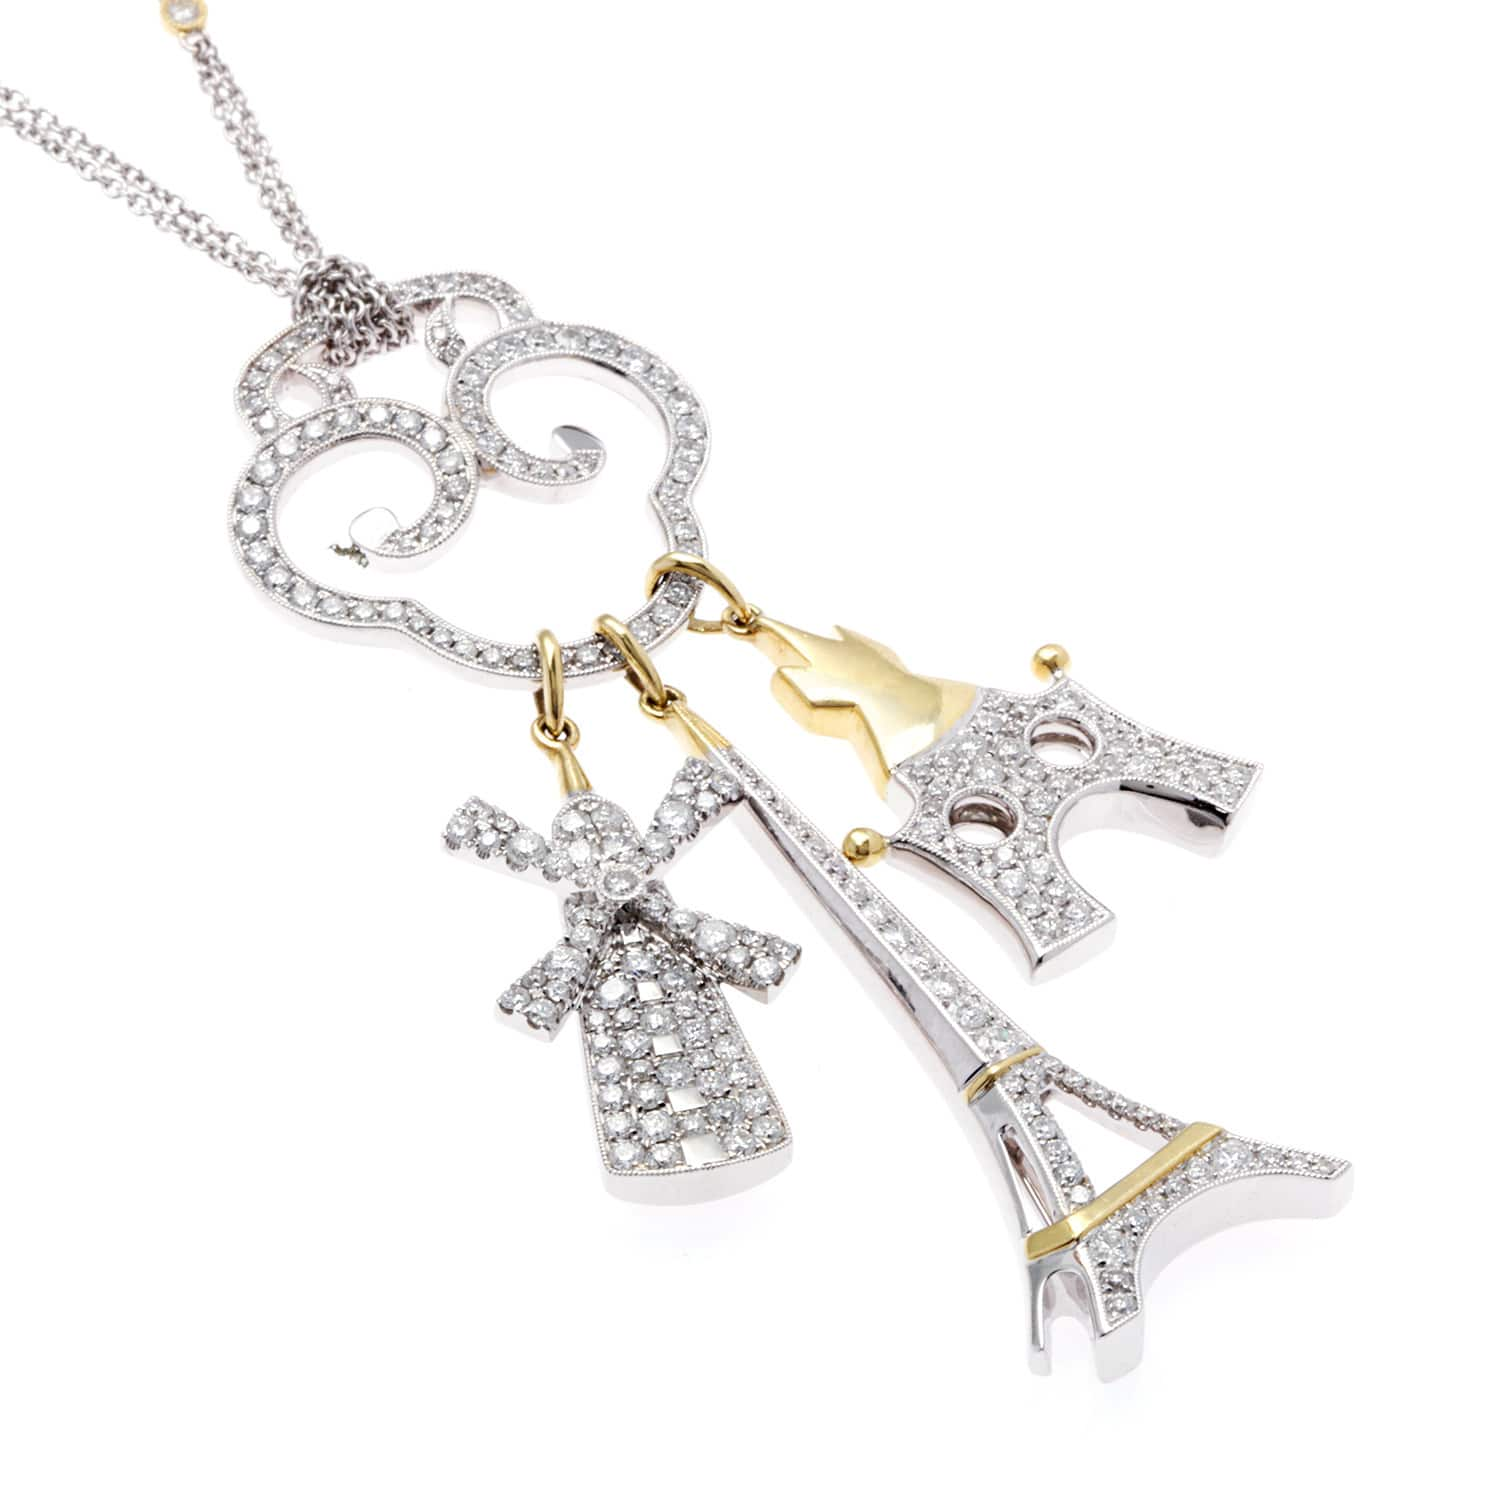 "theme of the diamond necklace C mme forestier has two diamond necklaces d which is one of the principal themes of ""the necklace"" a the necklace worksheet."